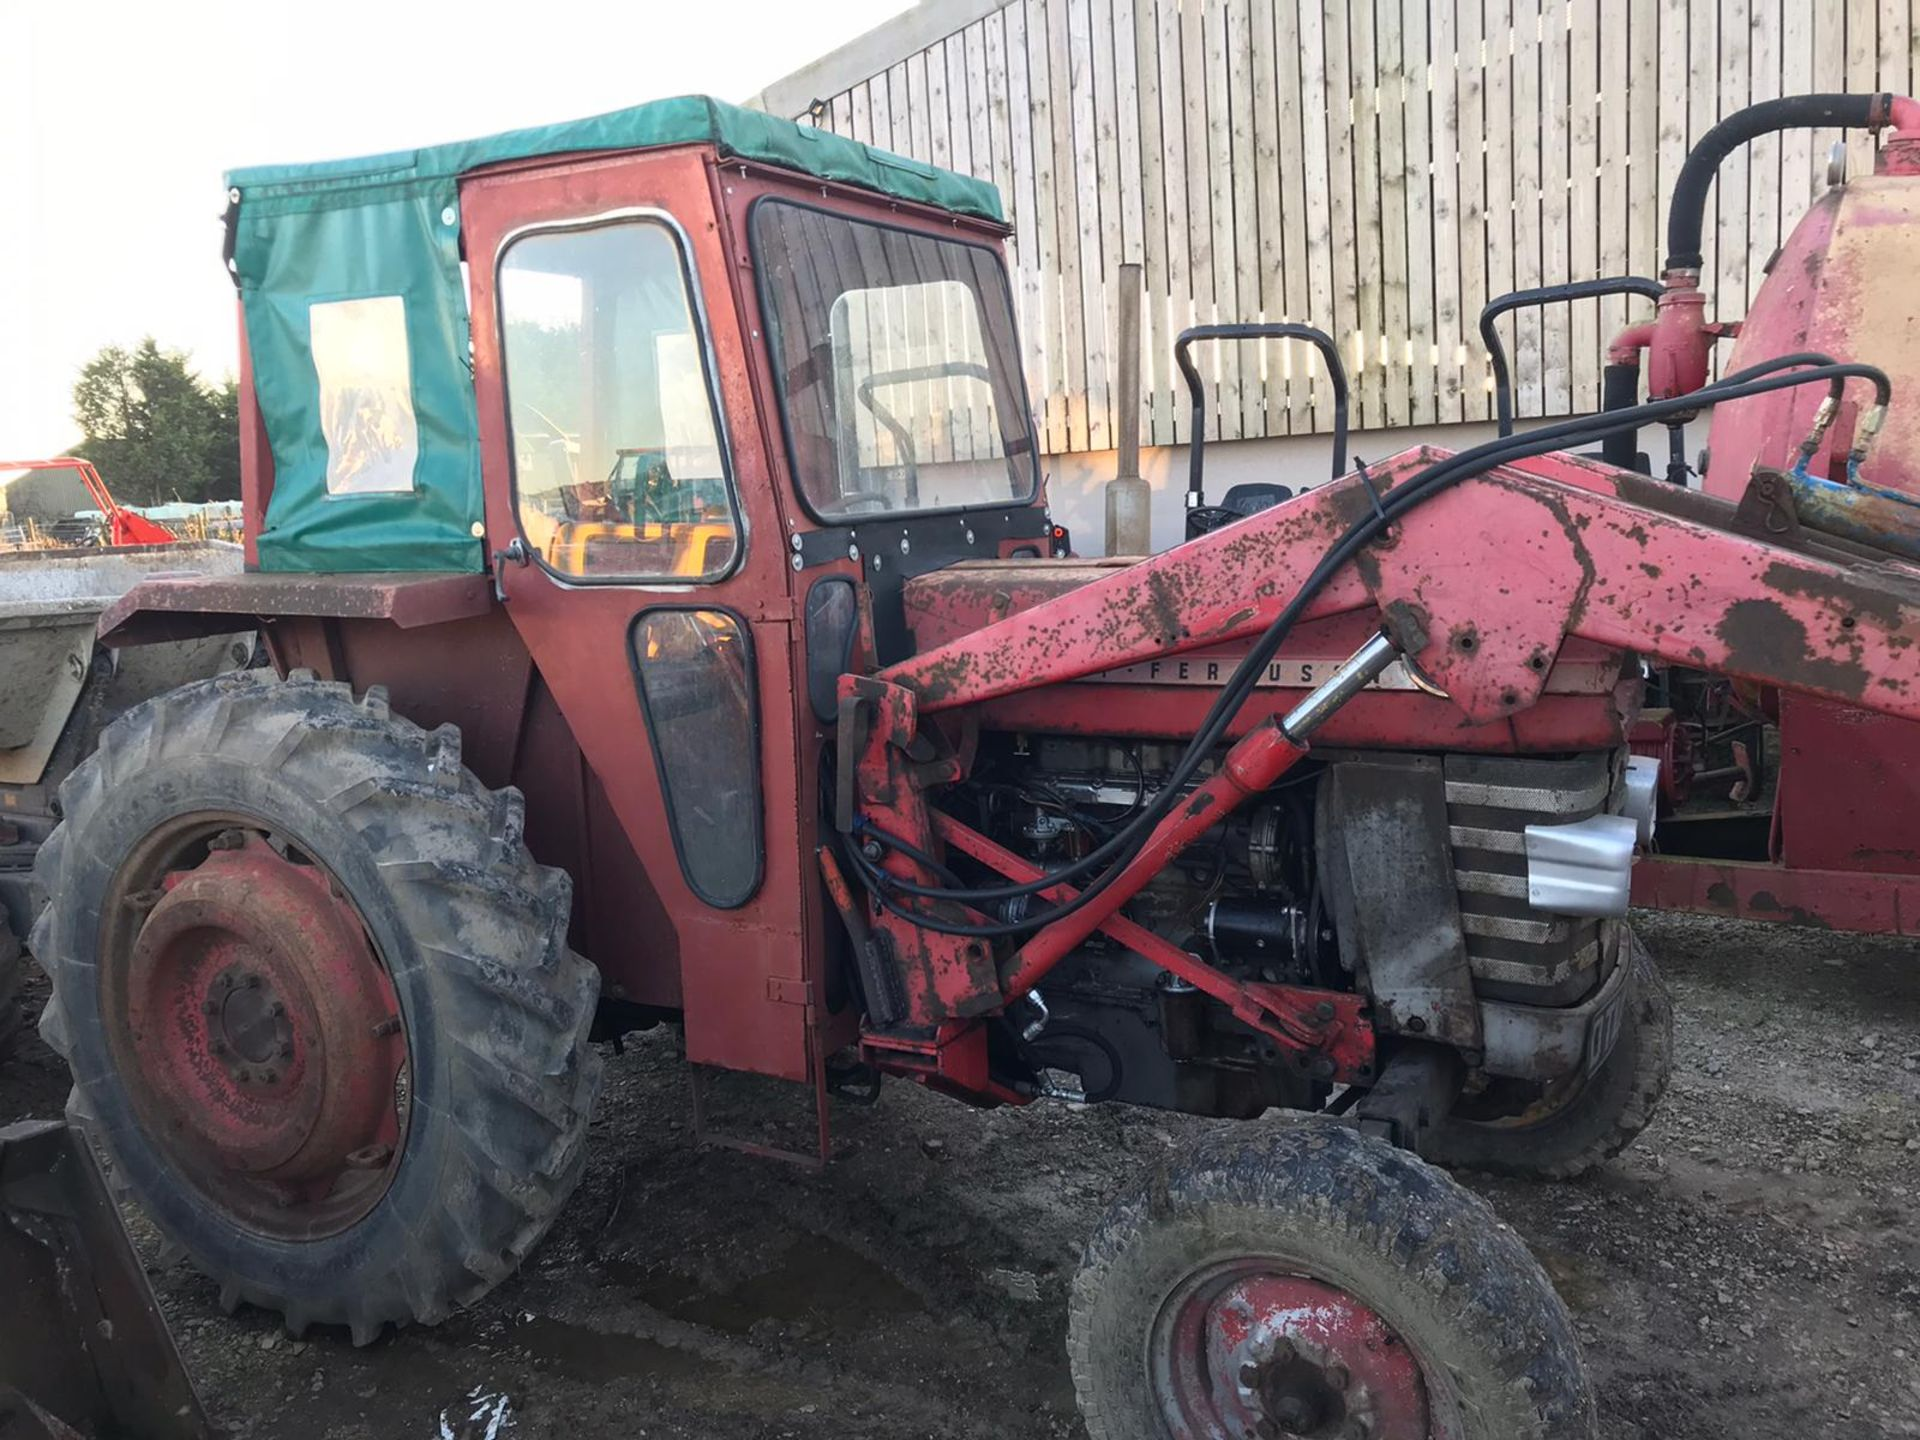 Lot 154 - MASSEY FERGUSON 165 TRACTOR, C/W FRONT LOADER ATTACHMENT, RUNS AND WORKS *PLUS VAT*